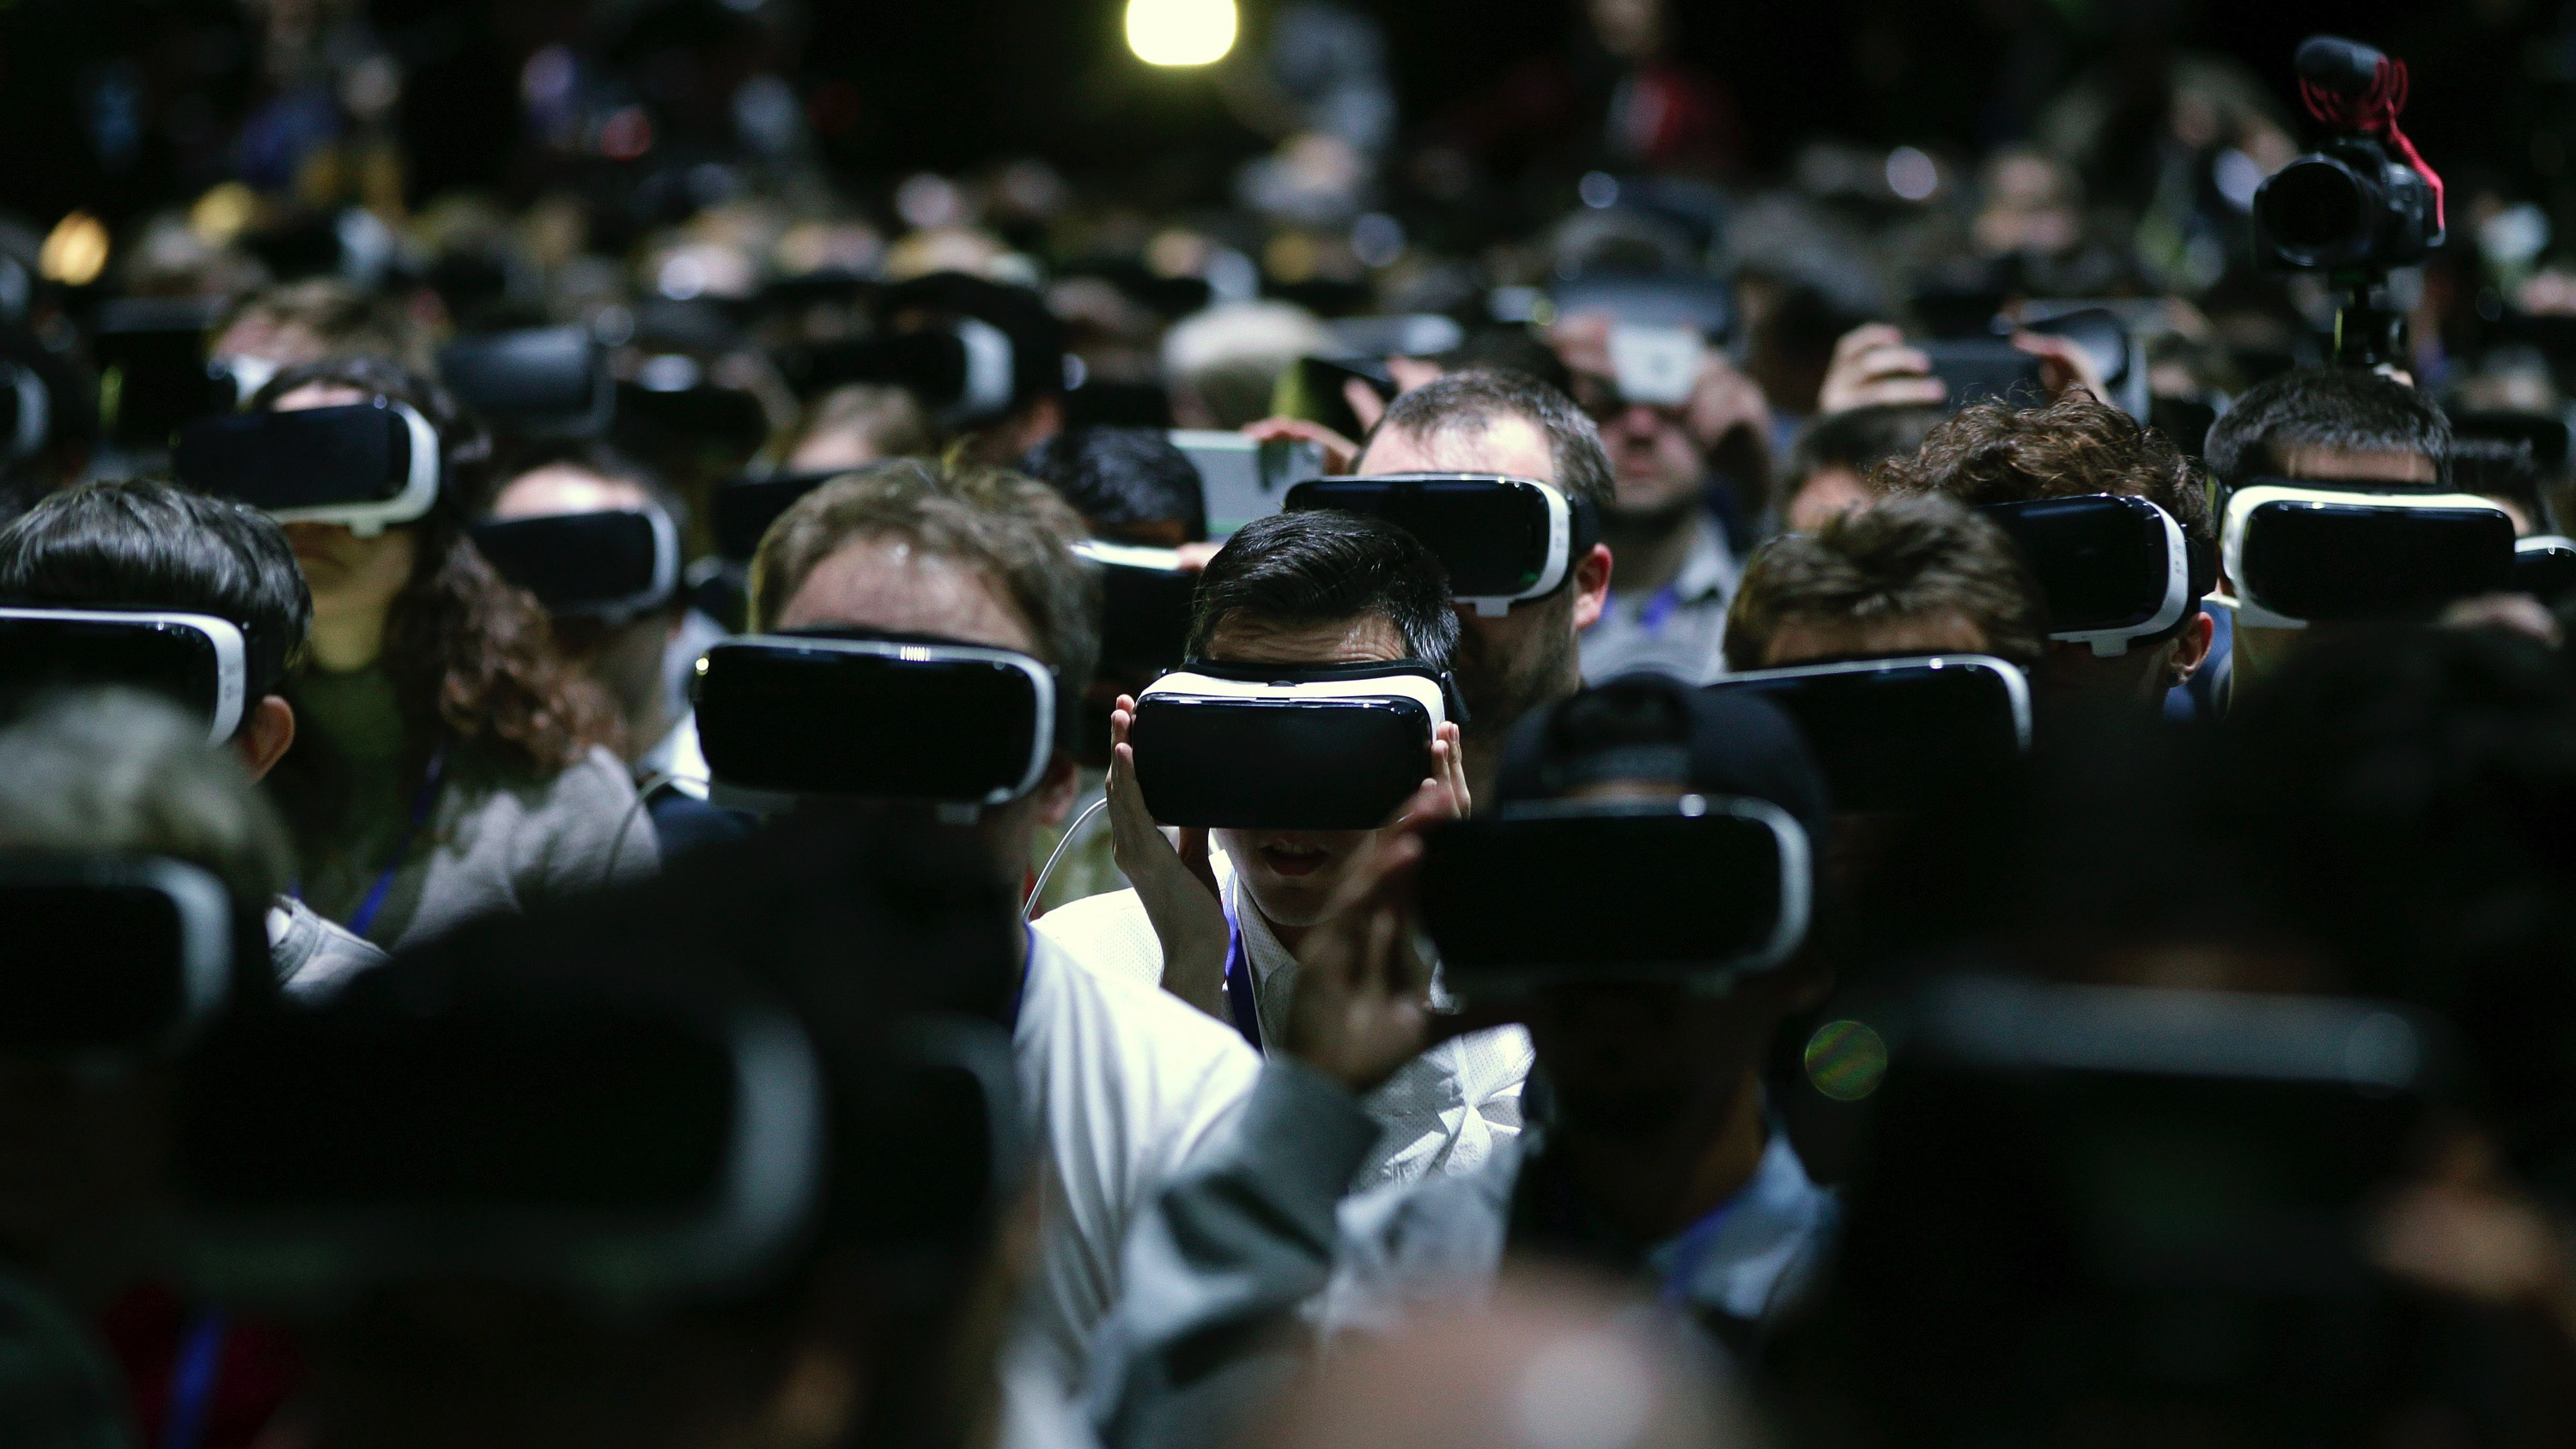 epa05174317 People use VR goggles during Samsung's presentation at a preview day of the the Mobile World Congress in Barcelona, Spain, 21 February 2016. The Mobile World Congress 2016 will run from 22 to 25 February 2016.  EPA/Alberto EstÈvez